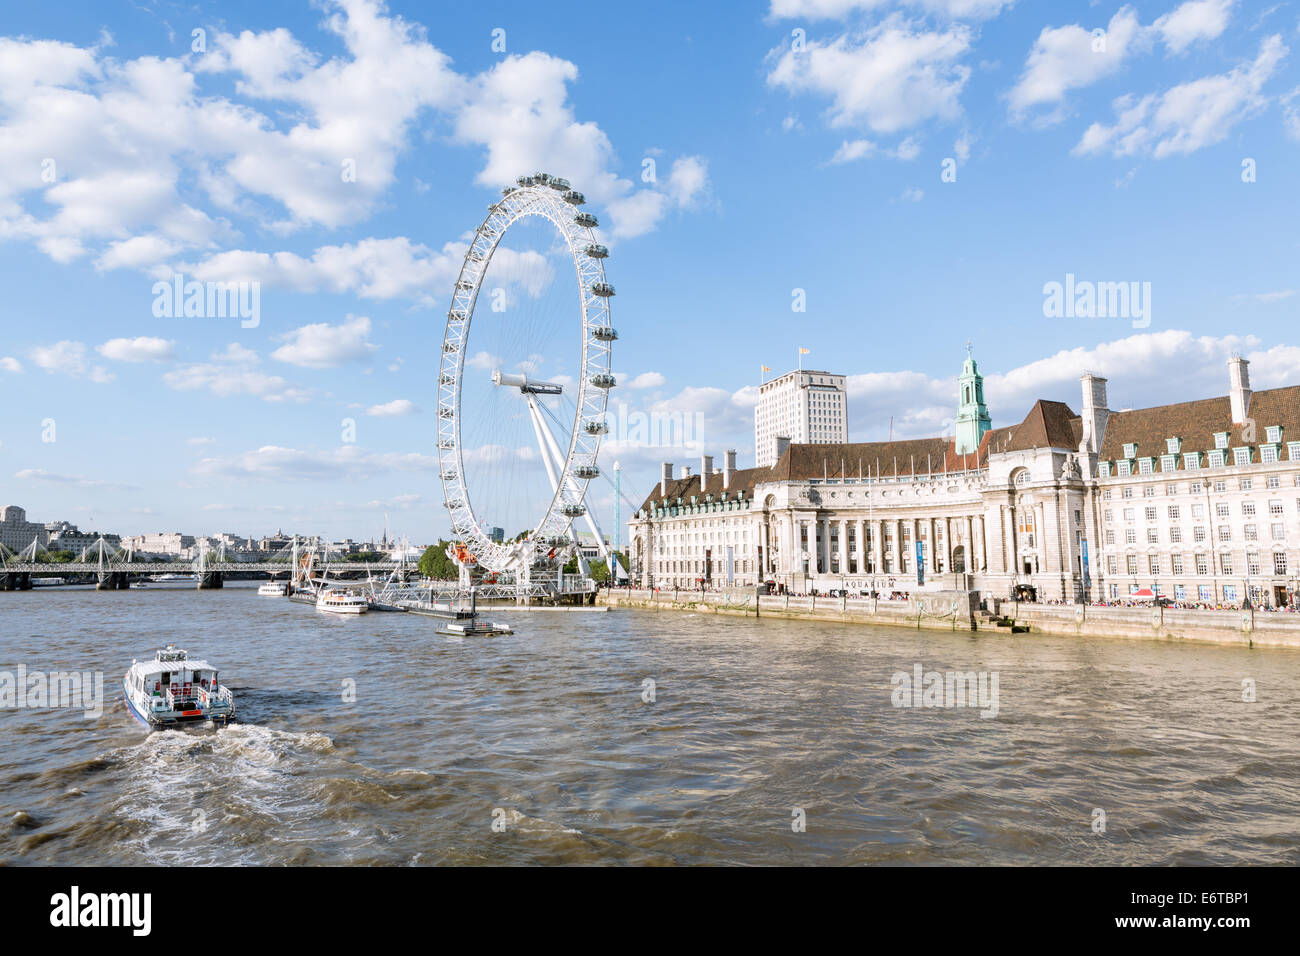 The London Eye and River Thames in London on a summer day - Stock Image